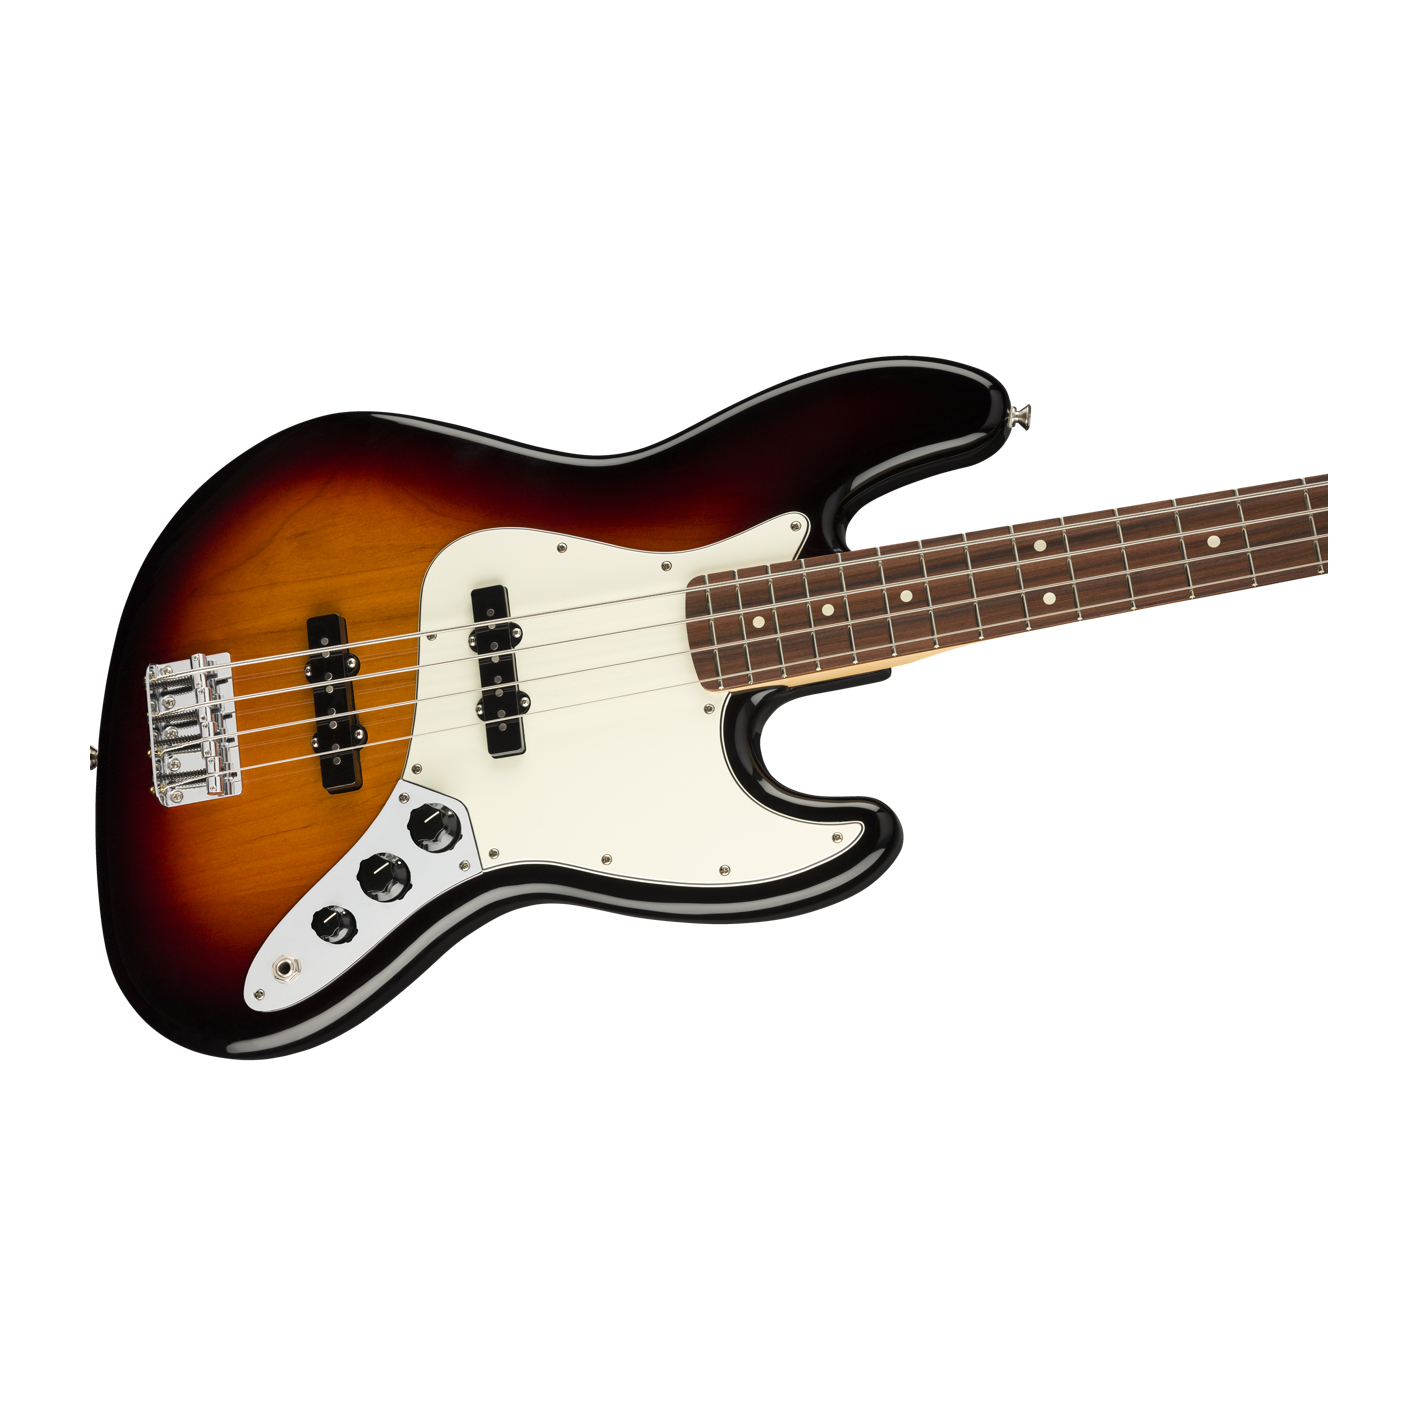 Fender Player Jazz Bass 3 Tone Sunburst